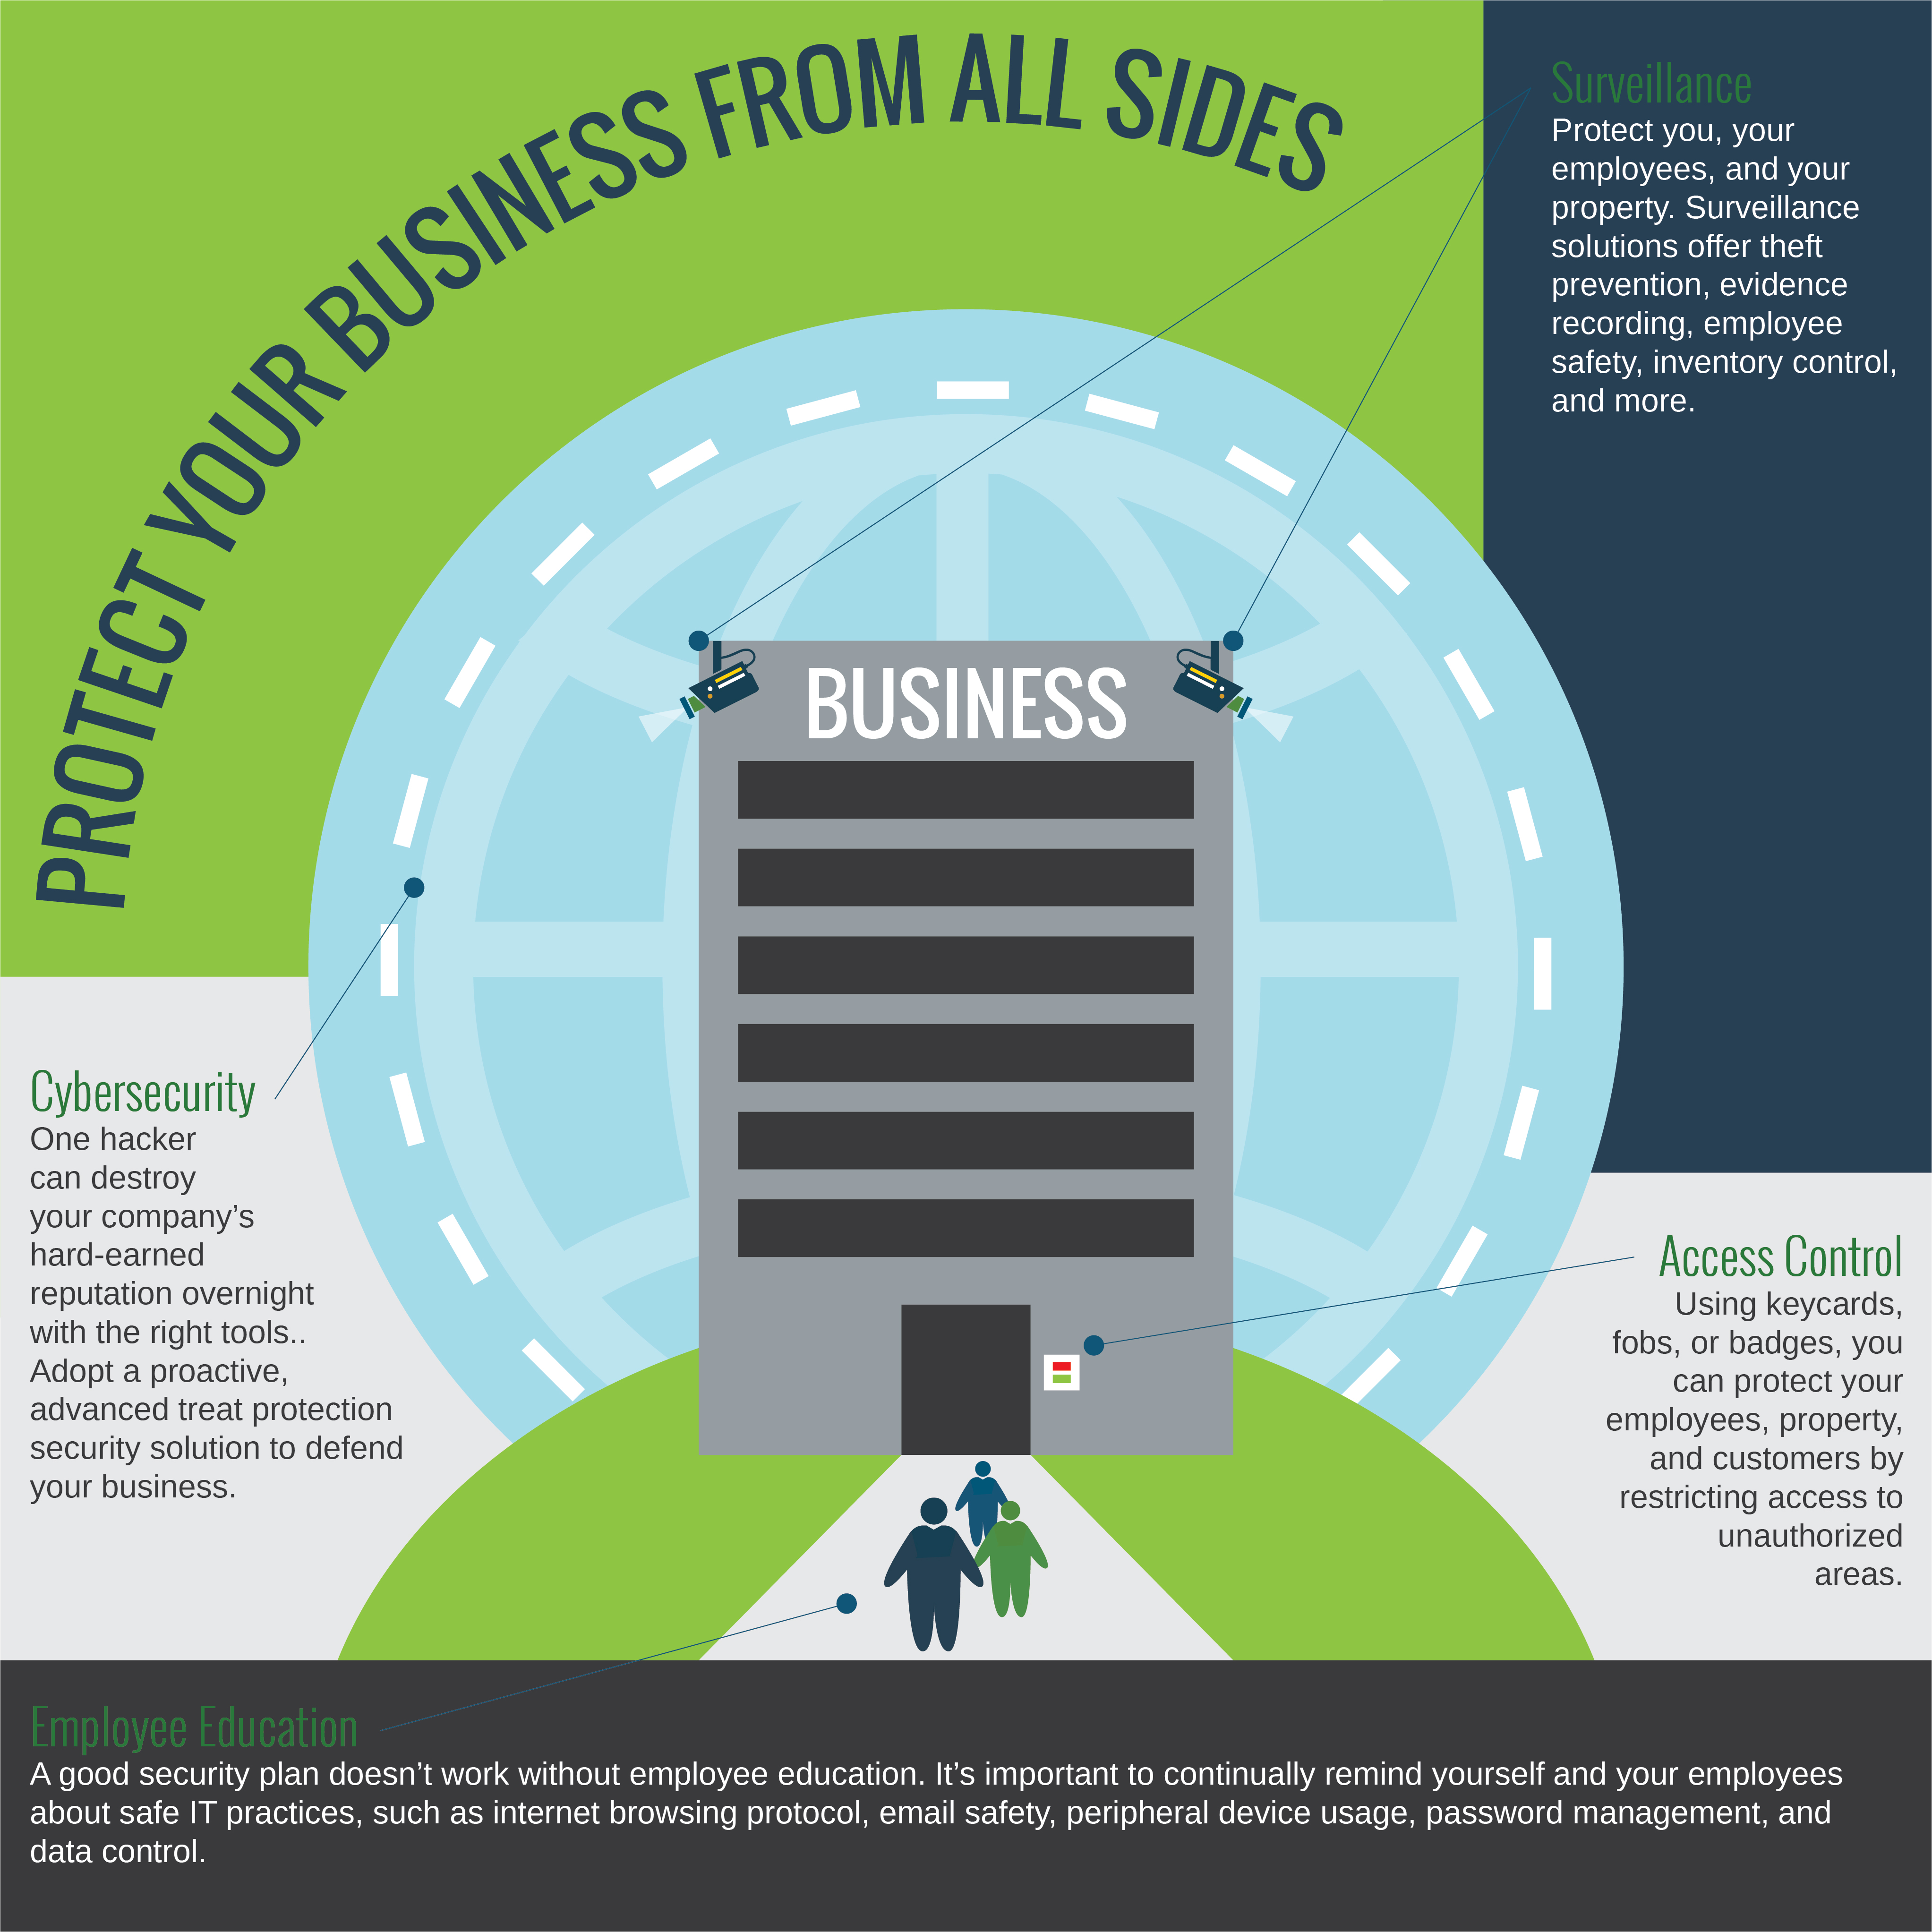 Protect Your Business From All Sides Infographic